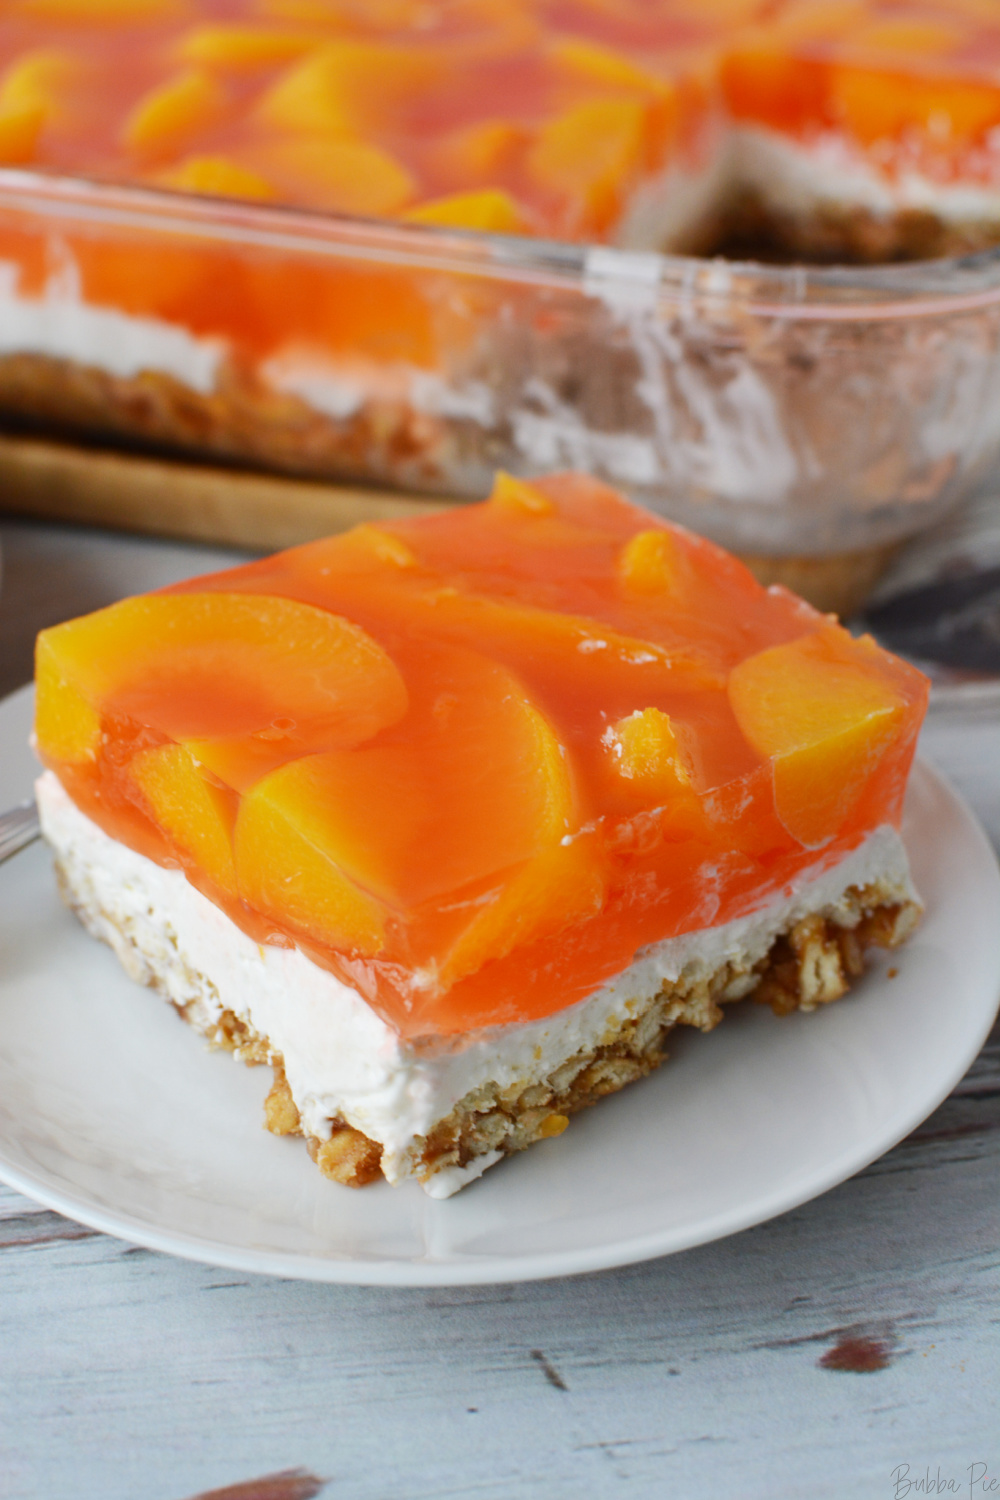 Easy Peach Pretzel Salad being served on a plate.